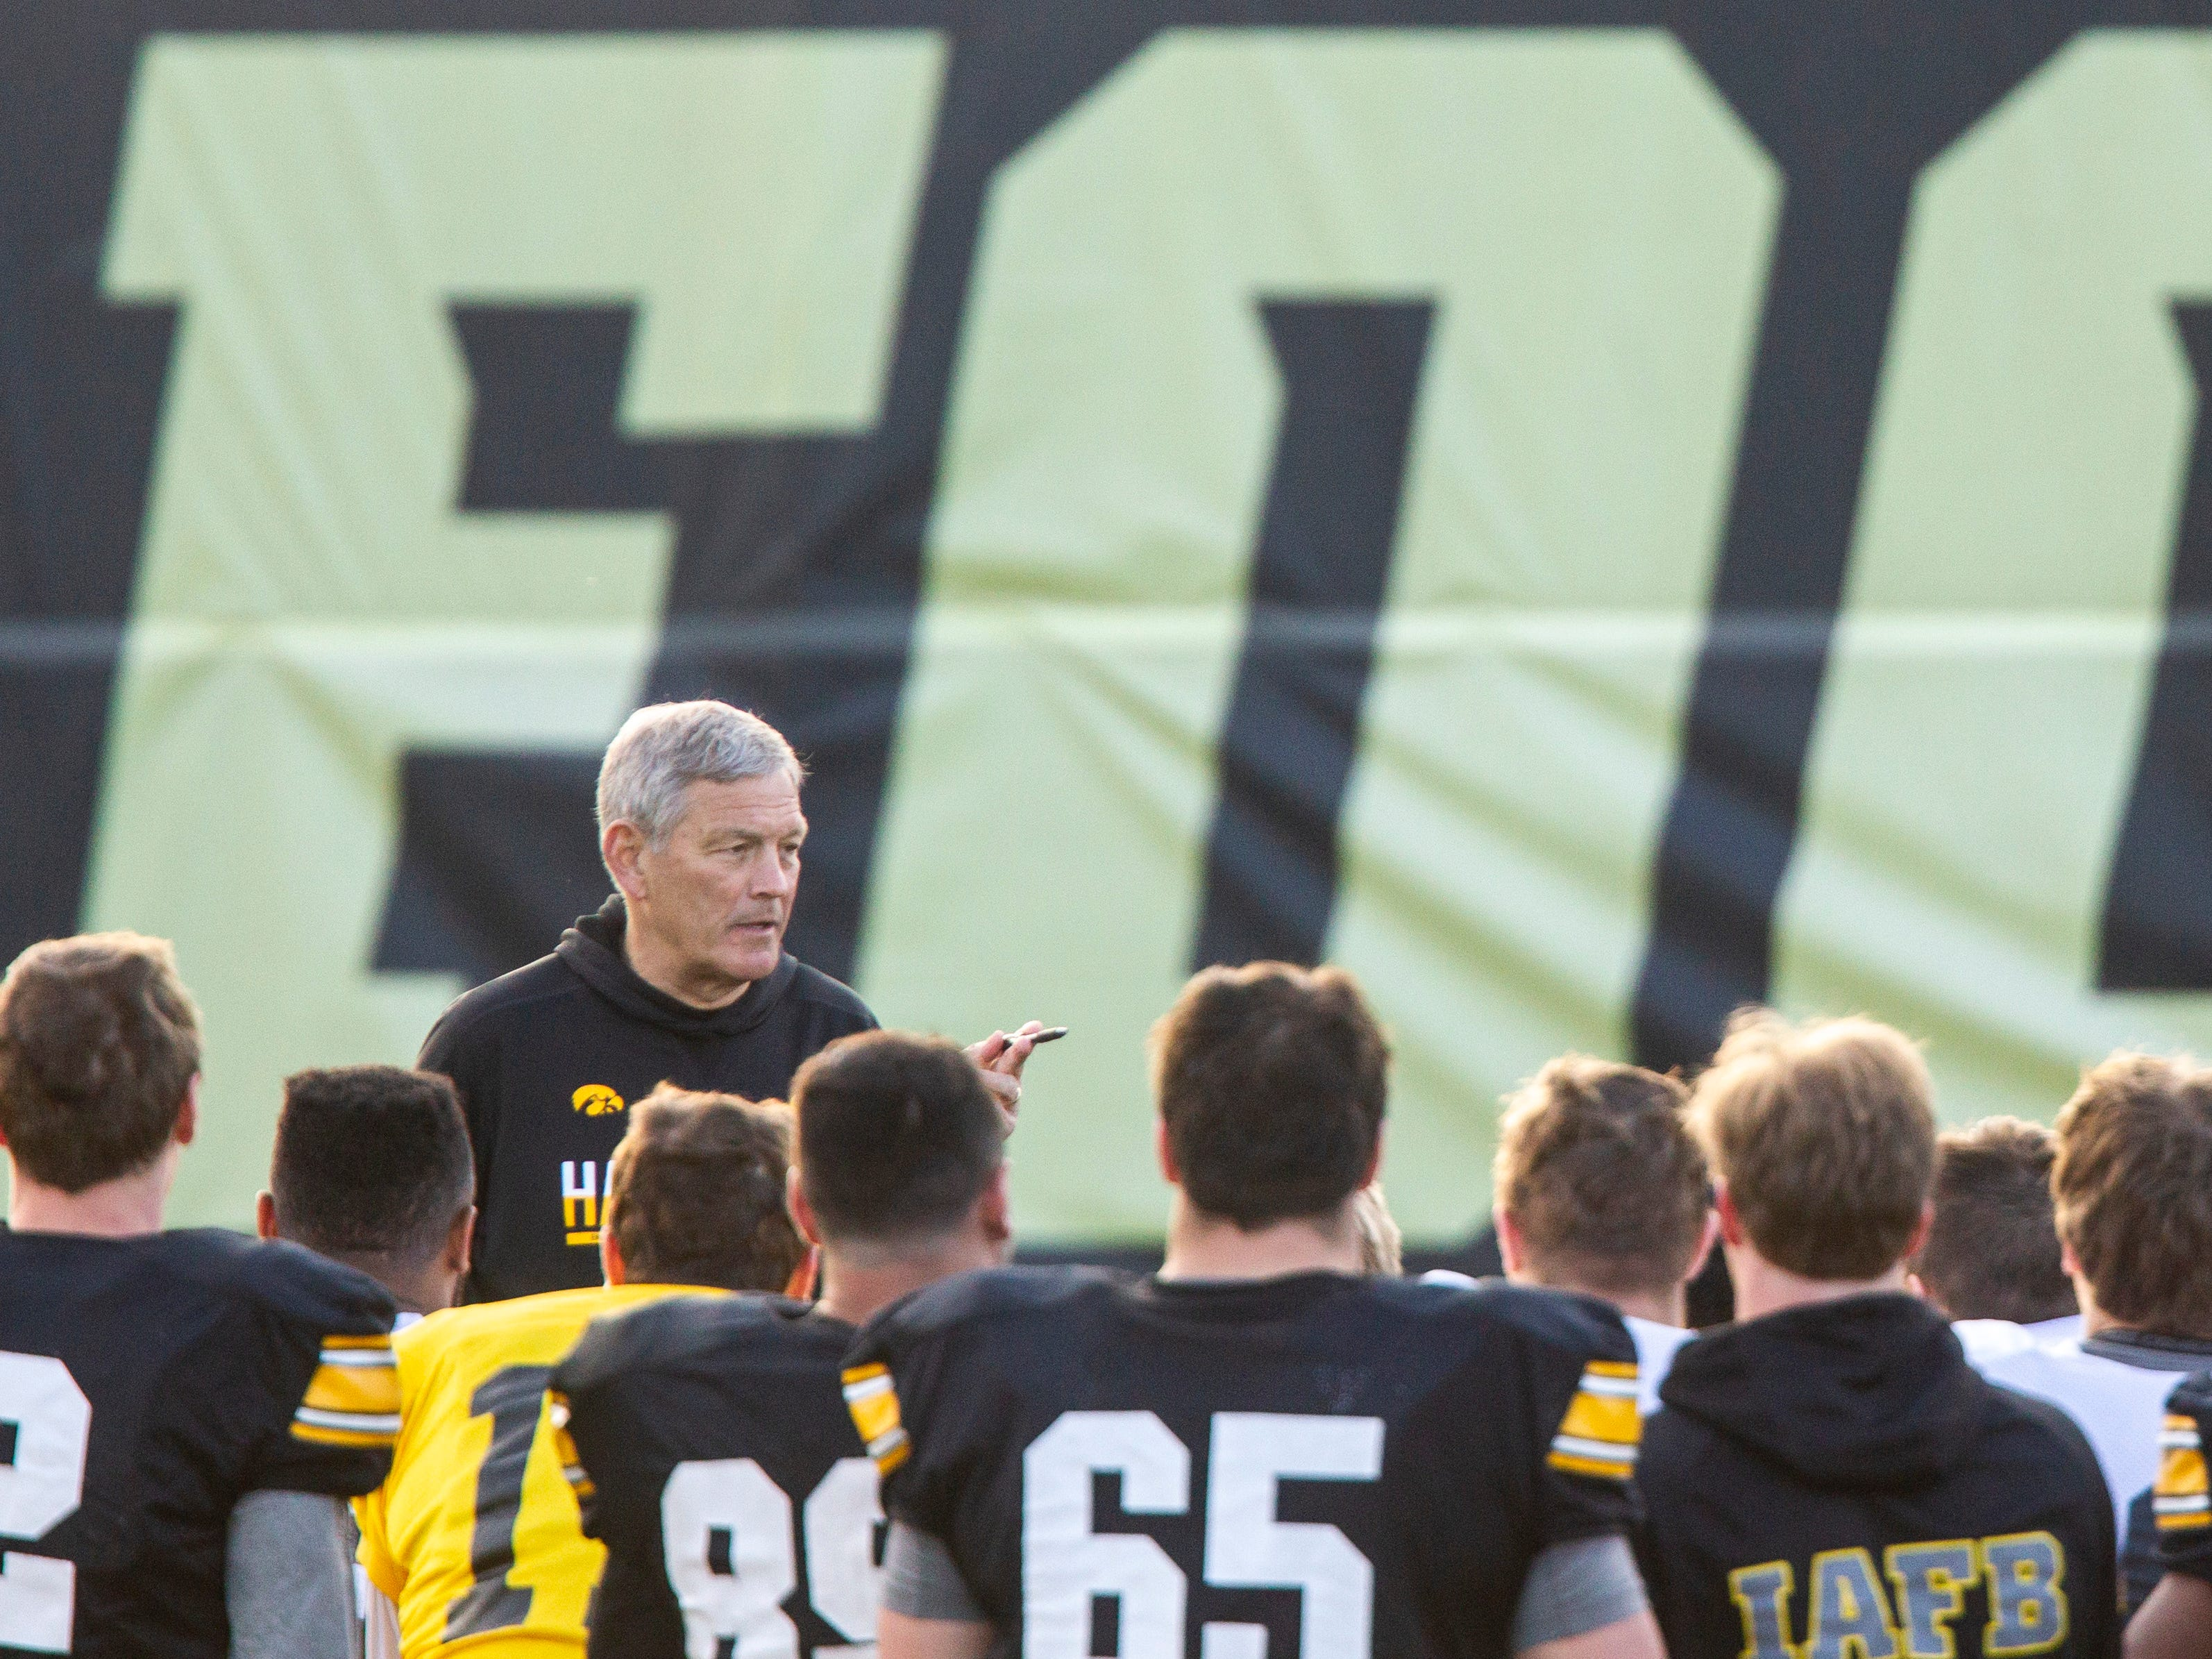 Iowa head coach Kirk Ferentz talks with players during the final spring football practice, Friday, April 26, 2019, at the University of Iowa outdoor practice facility in Iowa City, Iowa.